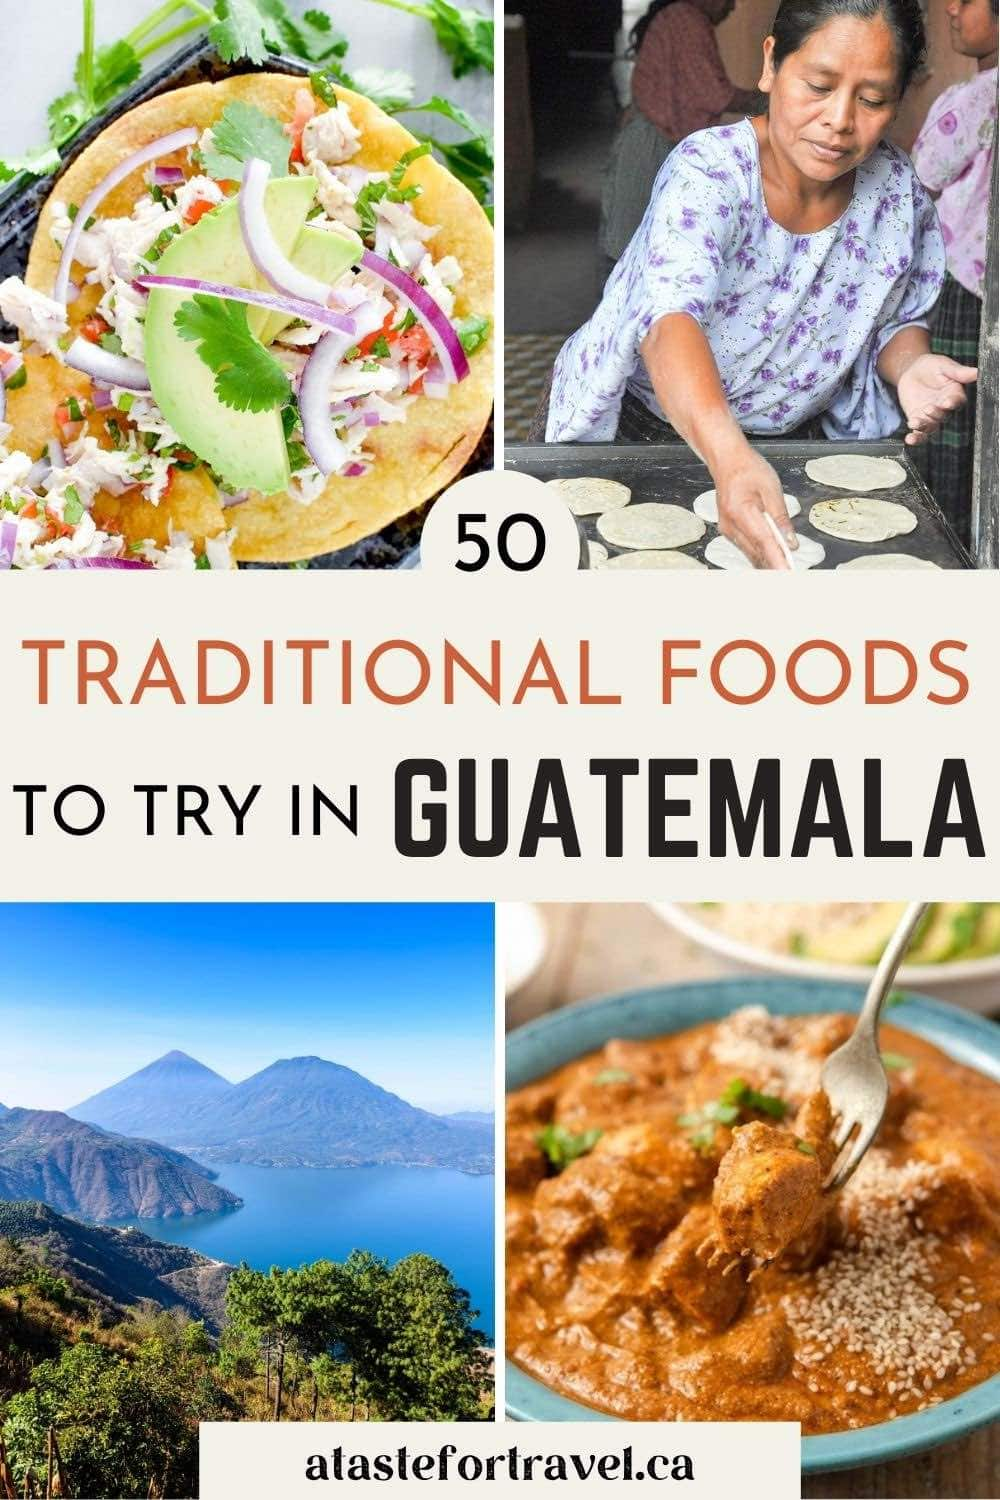 Traditional Guatemalan food collage with text overlay for Pinterest.